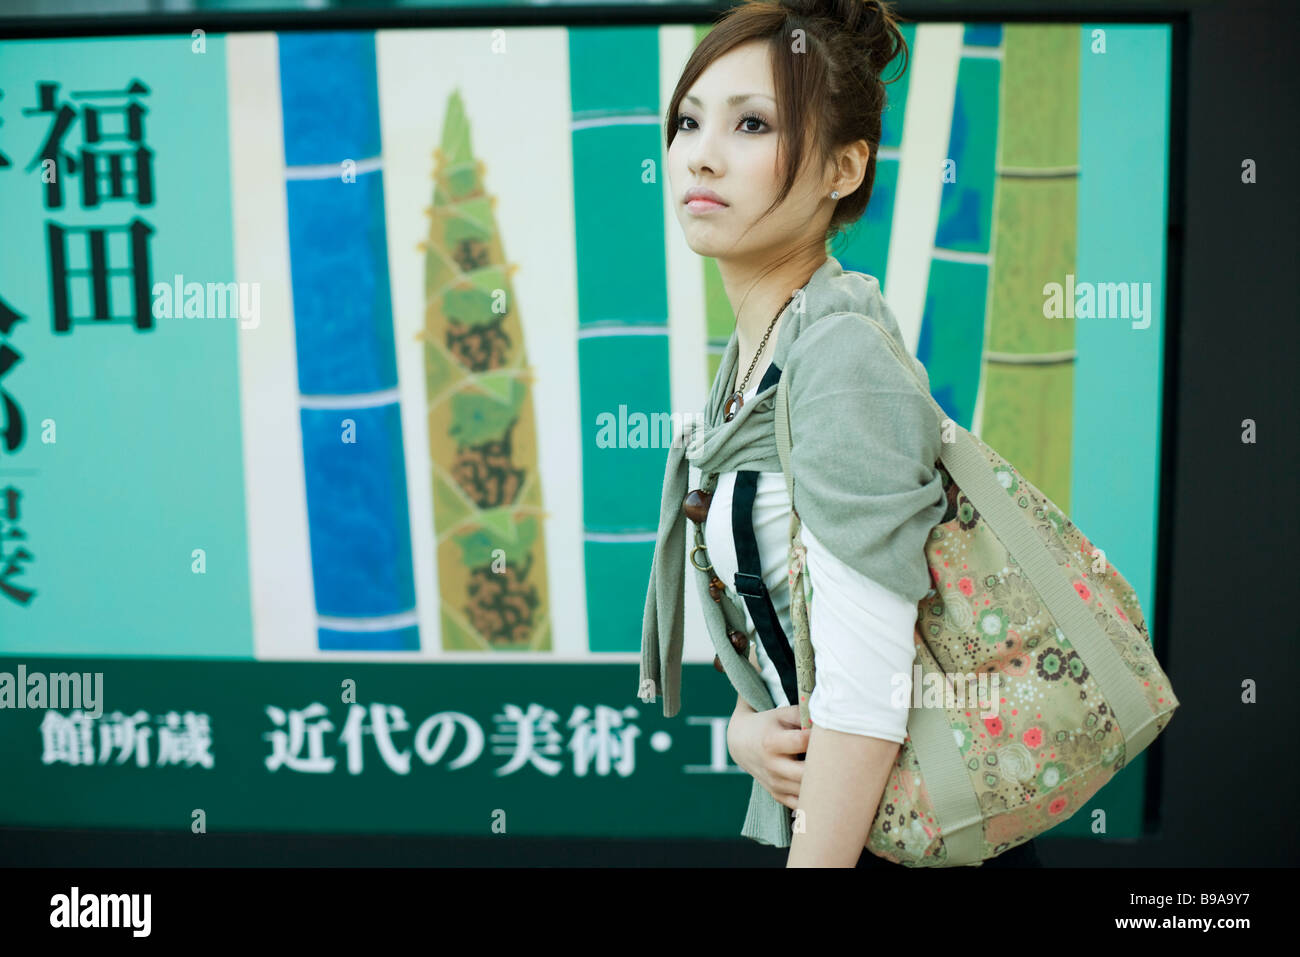 Young female walking past large poster with Japanese script, side view - Stock Image